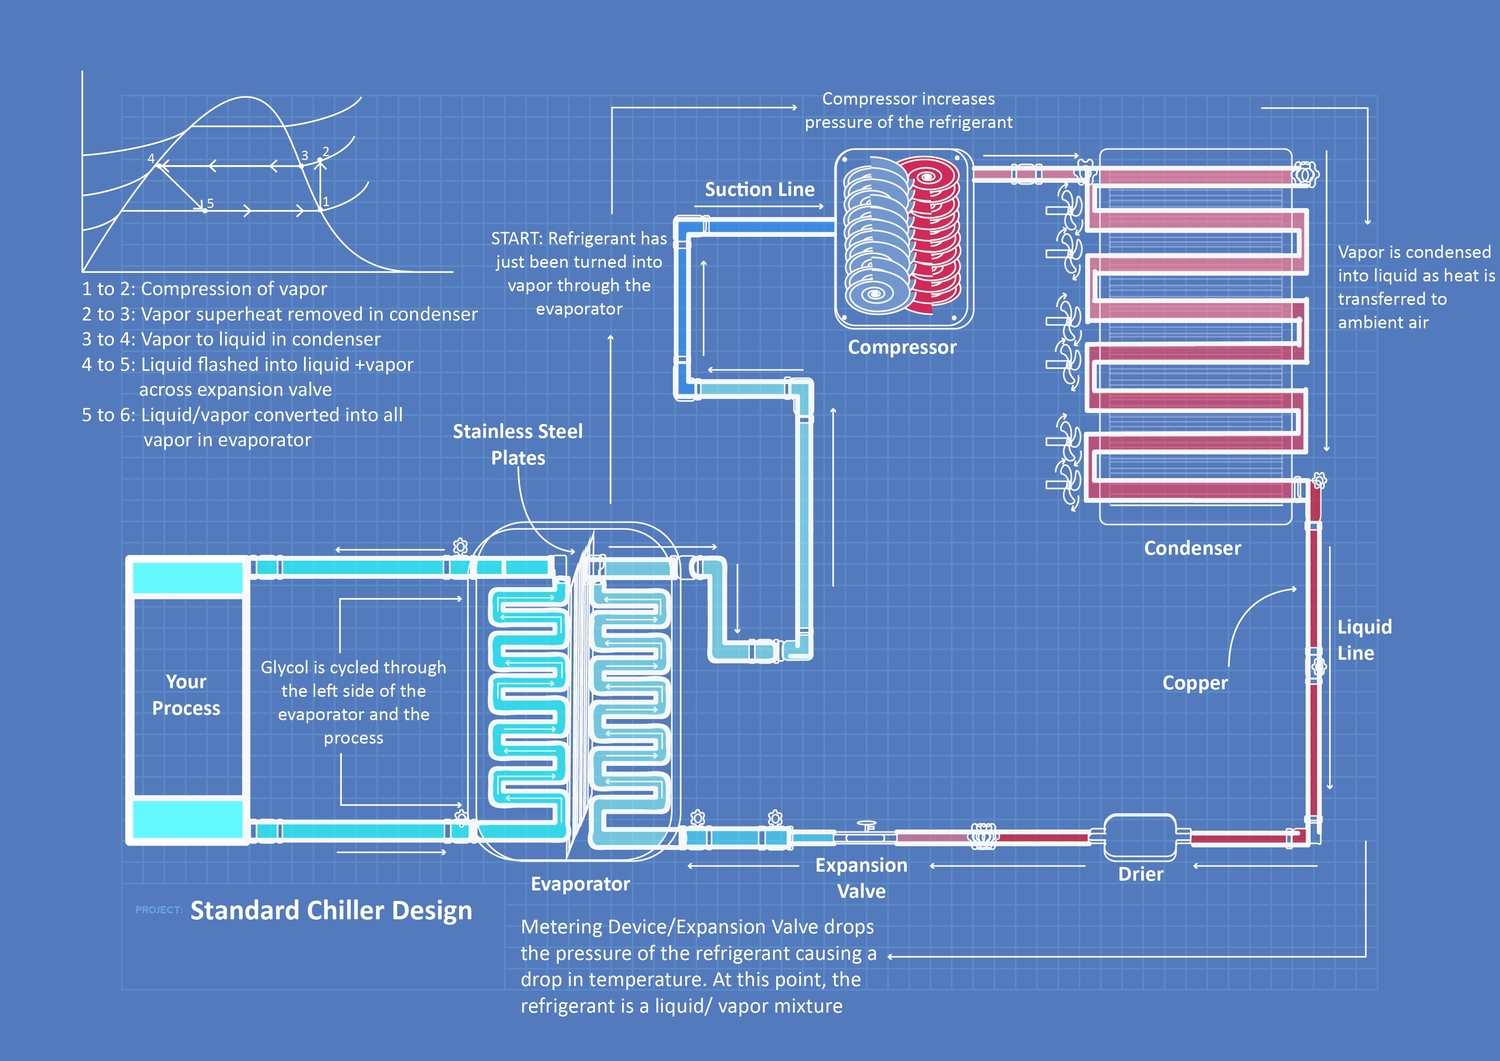 Compressor Piping Schematic Diagram on pump piping diagram, boiler loop piping diagram, piping schematics drawing, gas boiler piping diagram, example of piping instrumentation diagram, water boiler piping diagram, spence steam valve piping diagram, isometric piping diagram, typical boiler piping diagram, reverse return piping diagram, fan coil piping diagram, chiller piping diagram, piping plan diagram, storage tank piping diagram, radiant heat piping diagram, block diagram, refrigerant piping diagram, make up water piping diagram, water surge tank piping diagram, piping line diagram,